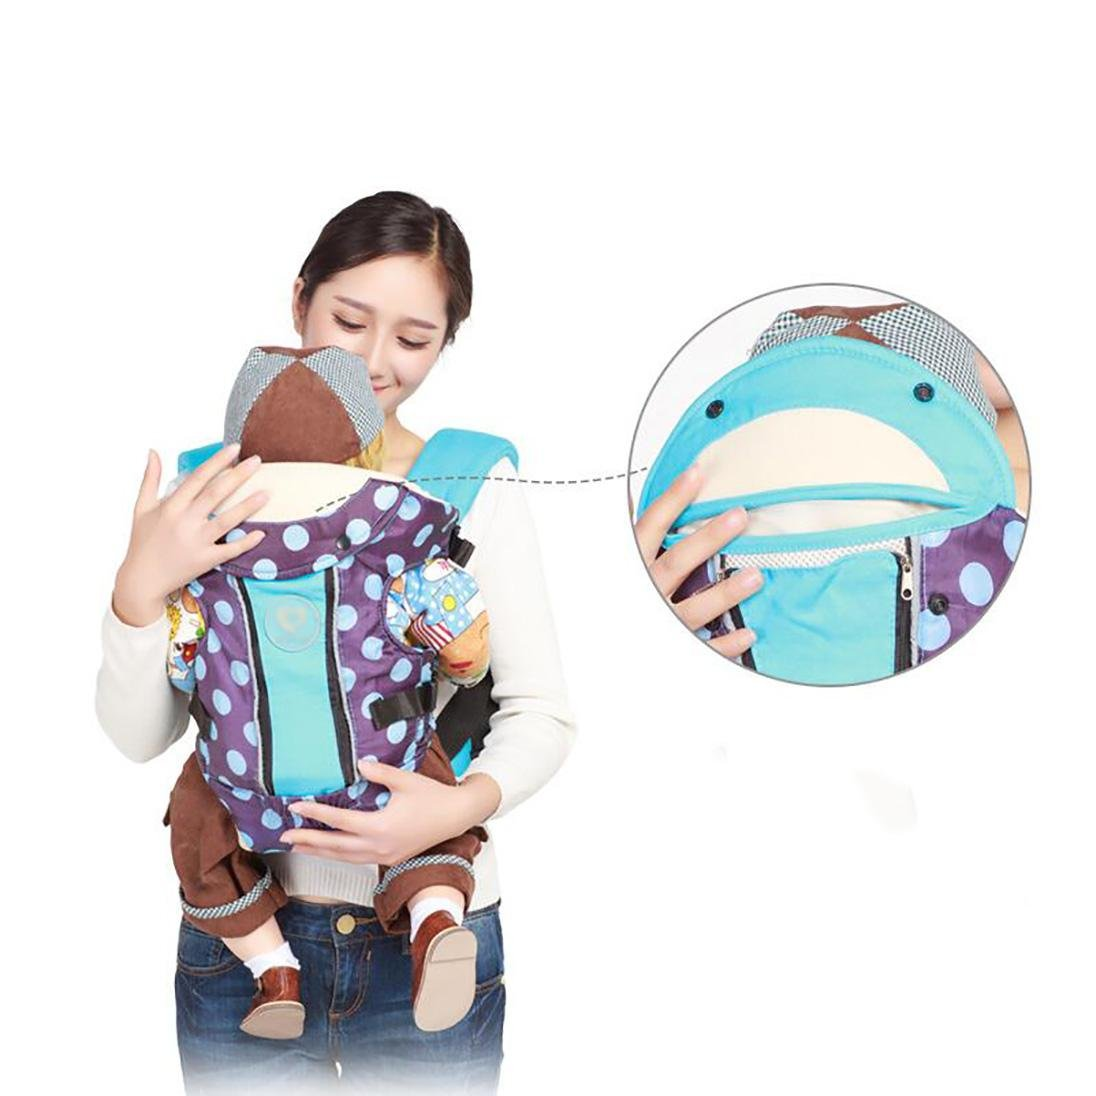 Porte-Bébé Porter Bébé Double Épaule Multifonctionnel Dot Coton Respirant,  Purple (Independent Color Boxed)  Amazon.fr  Commerce, Industrie   Science 0b544ad1f18